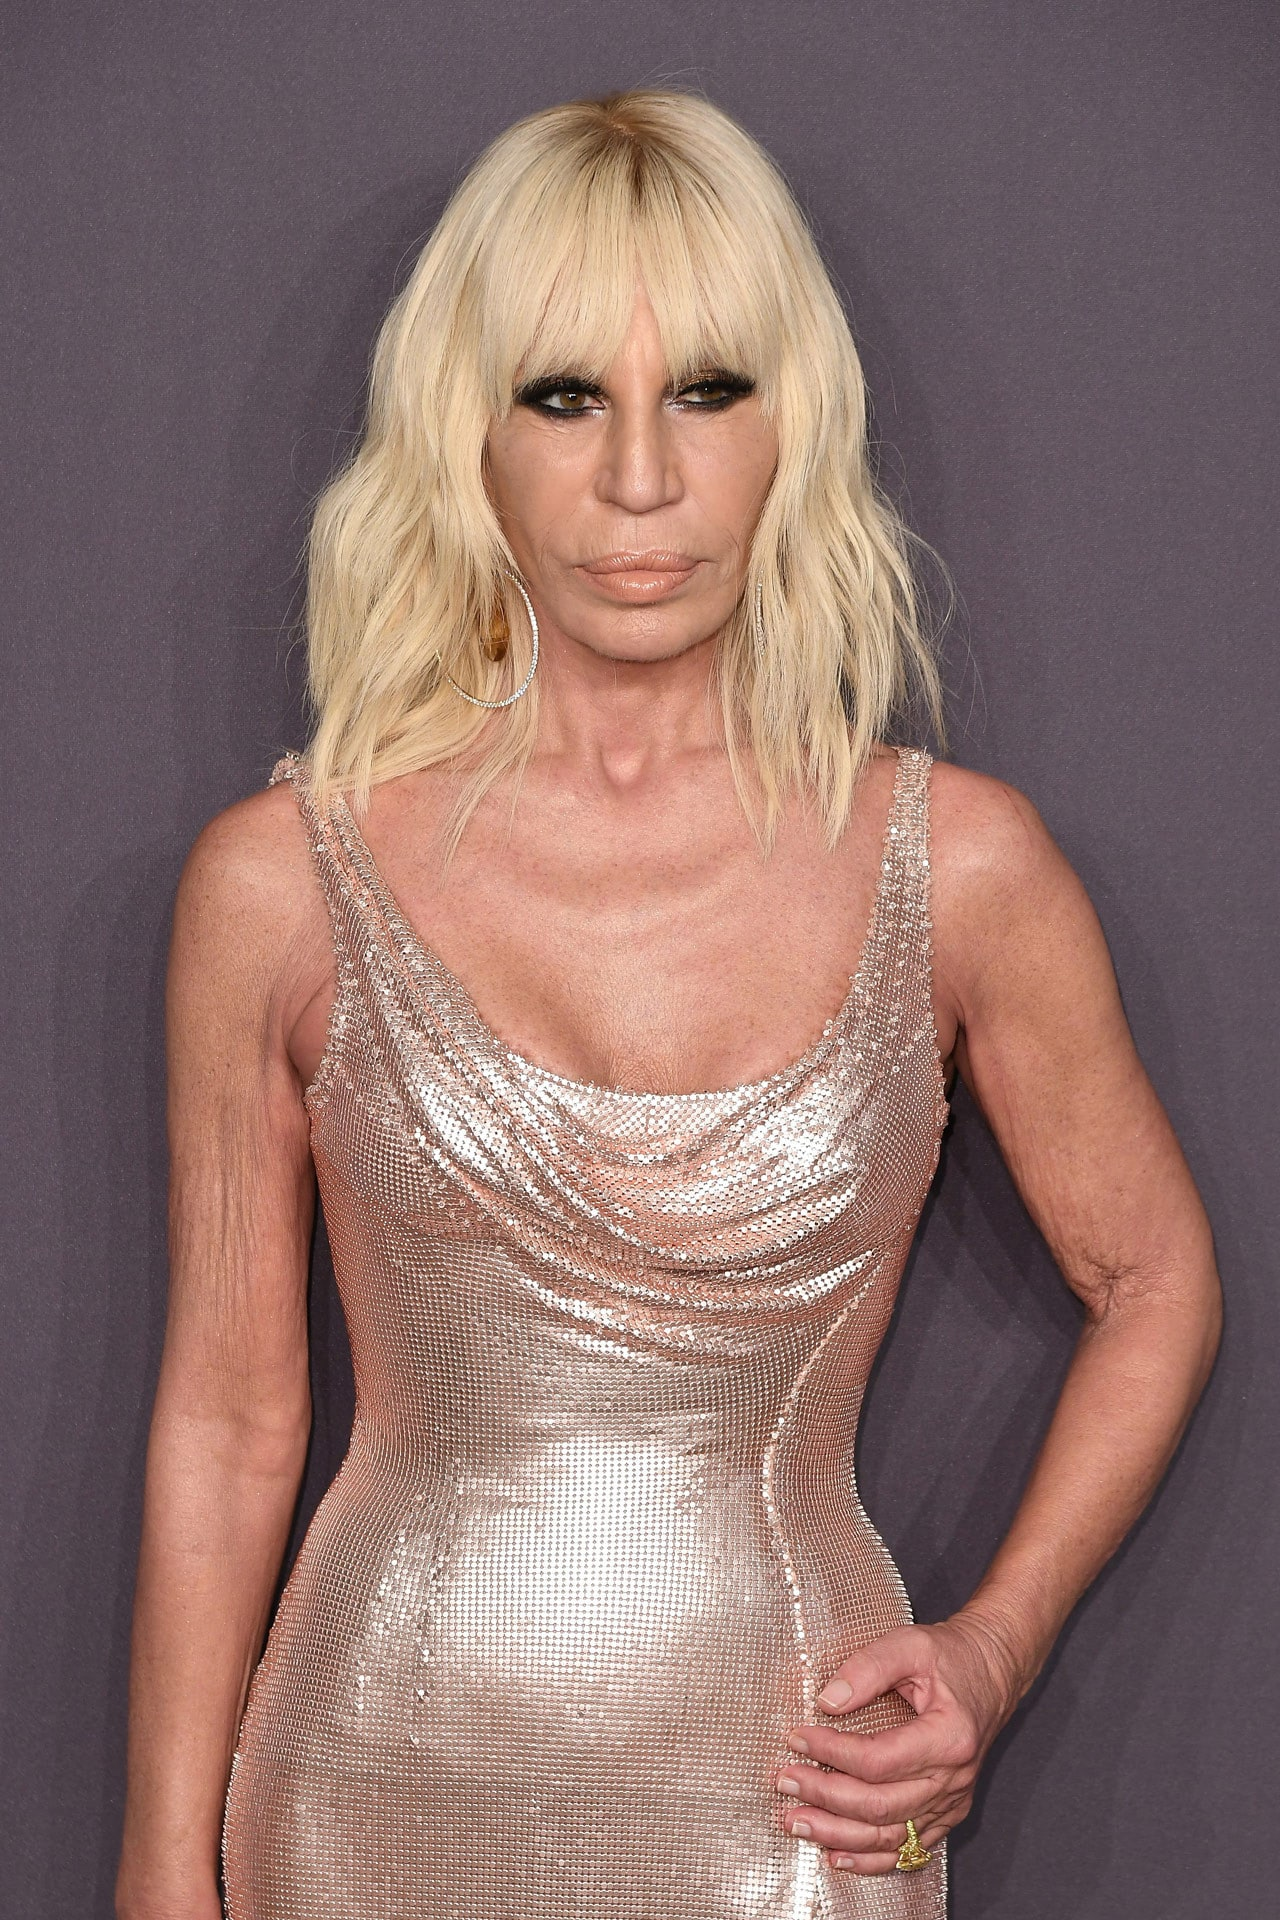 Donatella Versace has worked out every day for 18 years